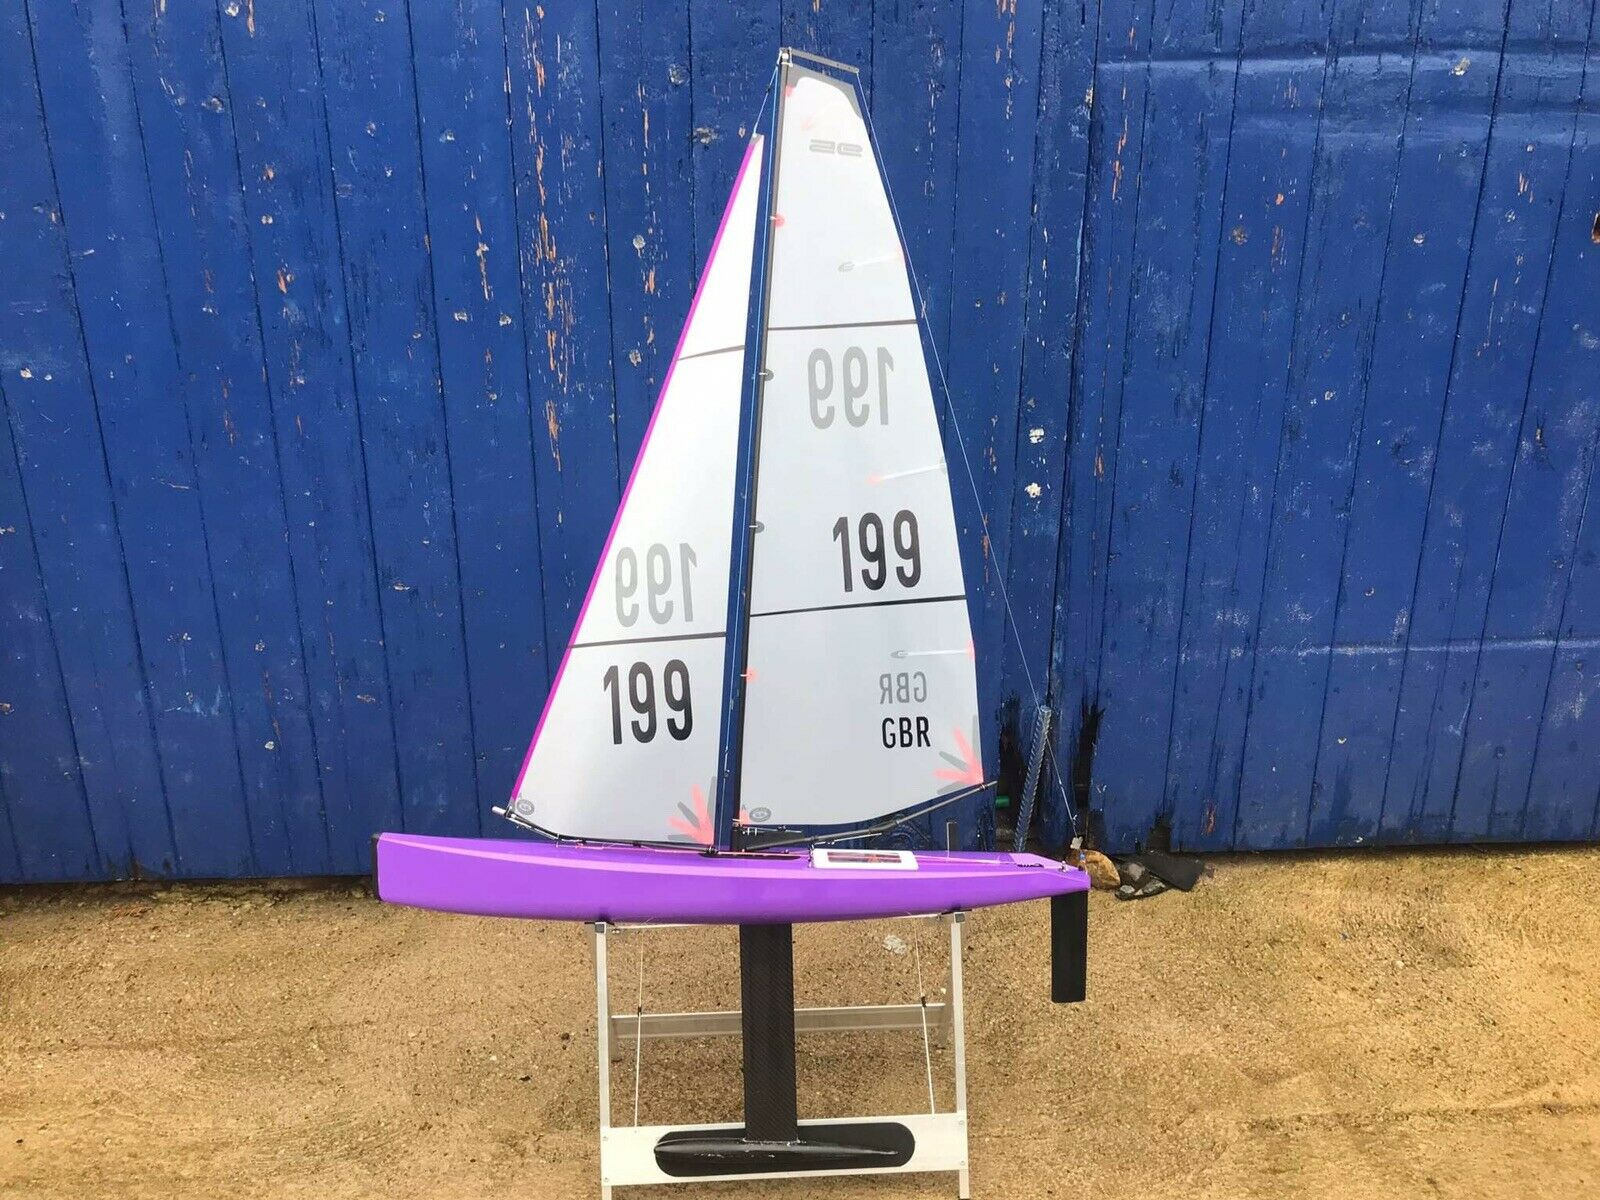 Dragon Flite 95 boat stand